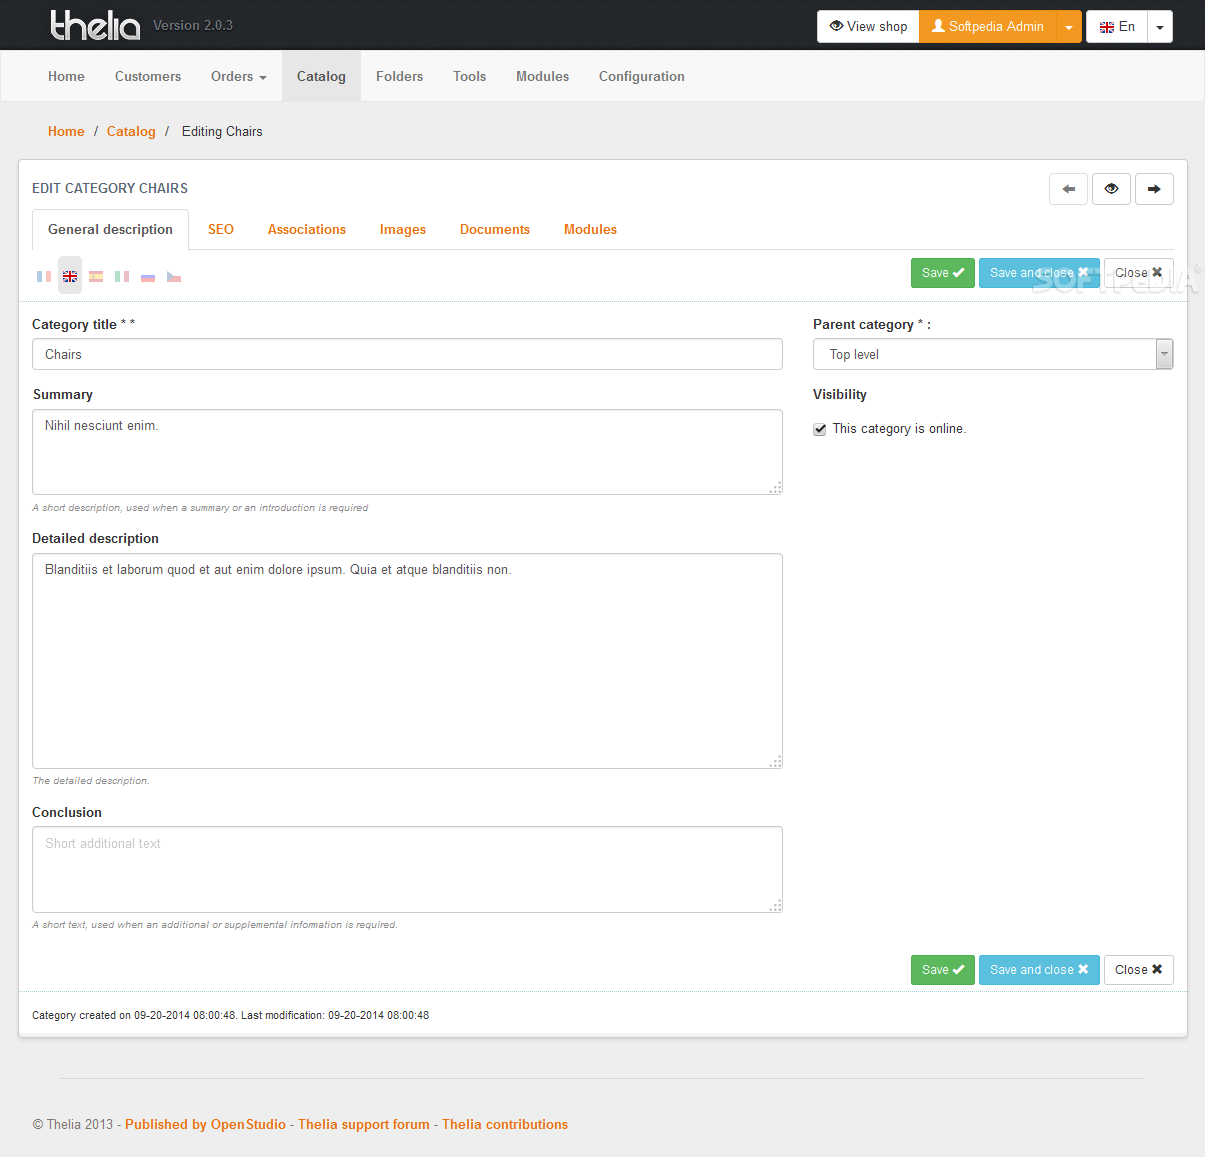 Thelia - Details for each category can be edited by any store administrator